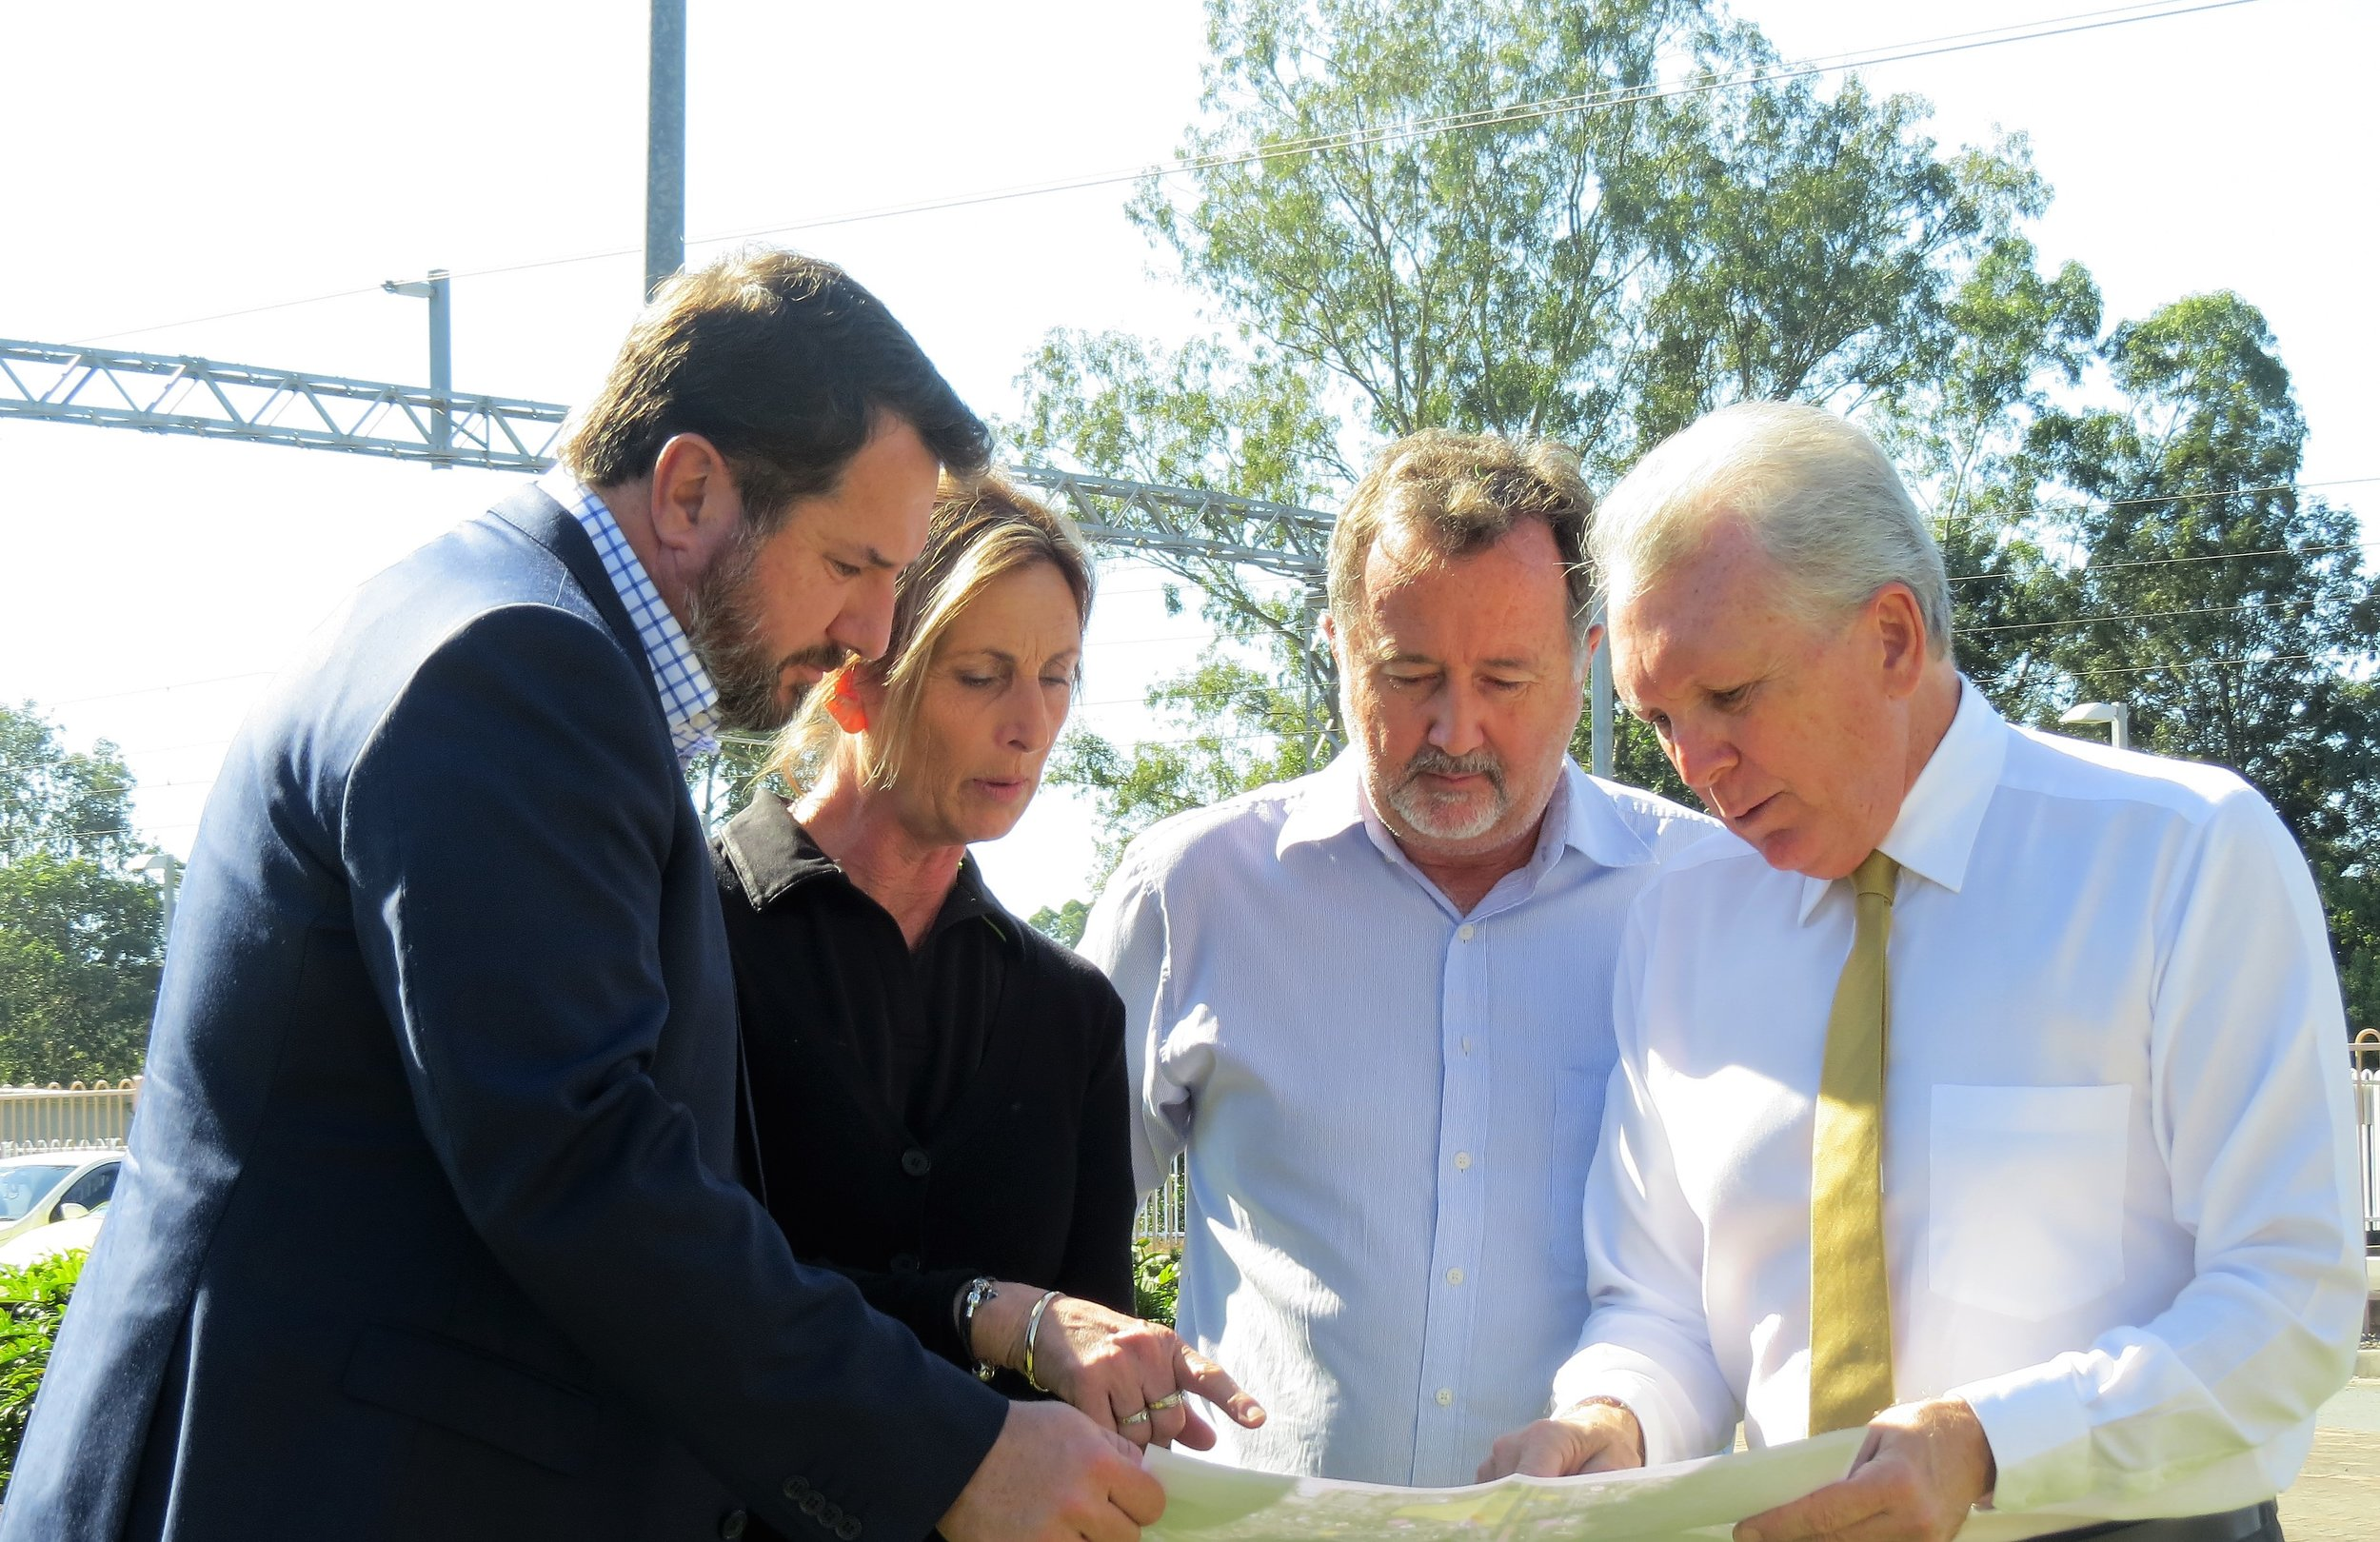 Andrew Powell (Shadow Minister for Transport), Cheryl Rutland (BP Landsborough), Ashley Grigor (Landsborough IGA) and Mark McArdle (State Member for Caloundra).